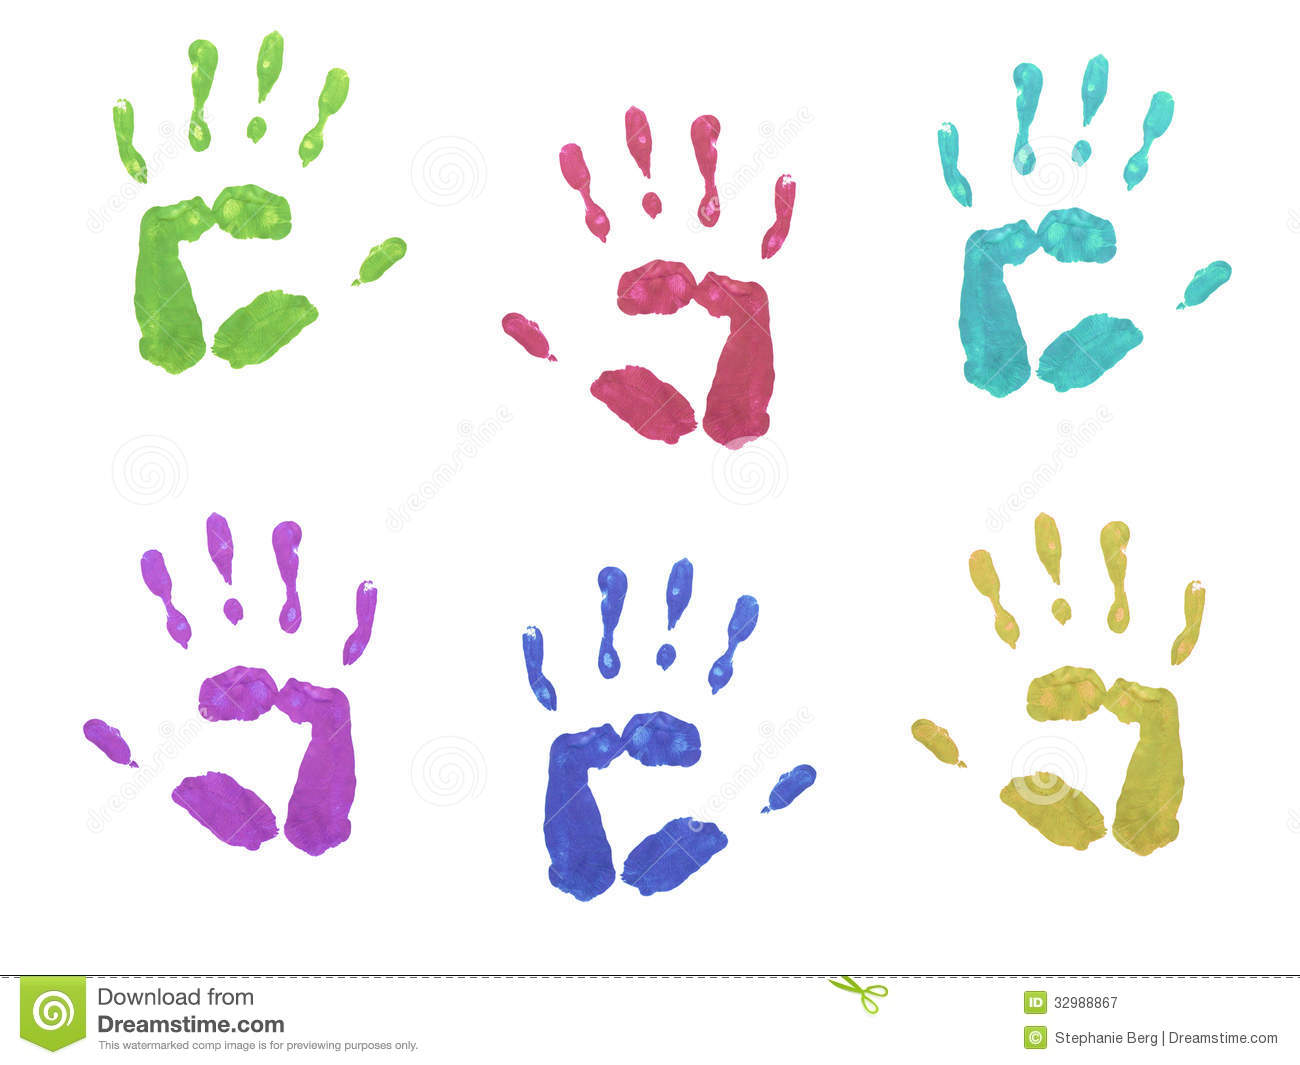 Handabdruck Kind Colourful Hand Prints Royalty Free Stock Photography